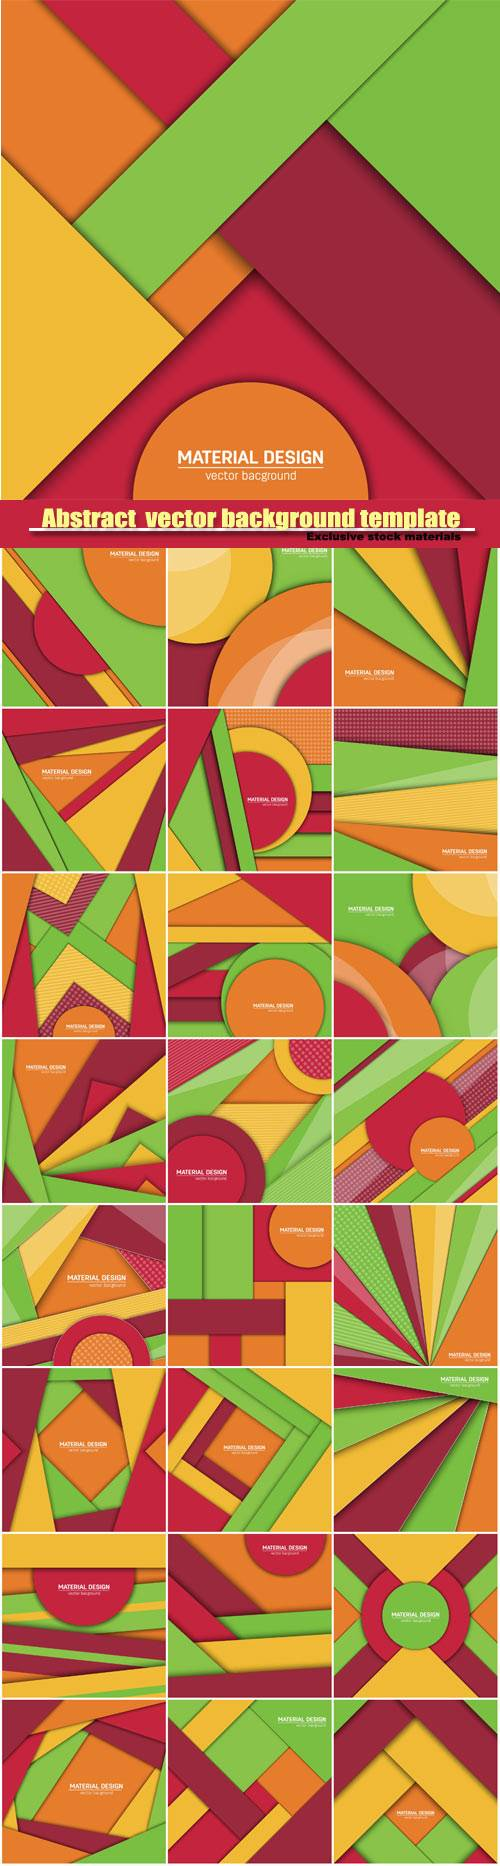 Abstract creative layout vector background template #2